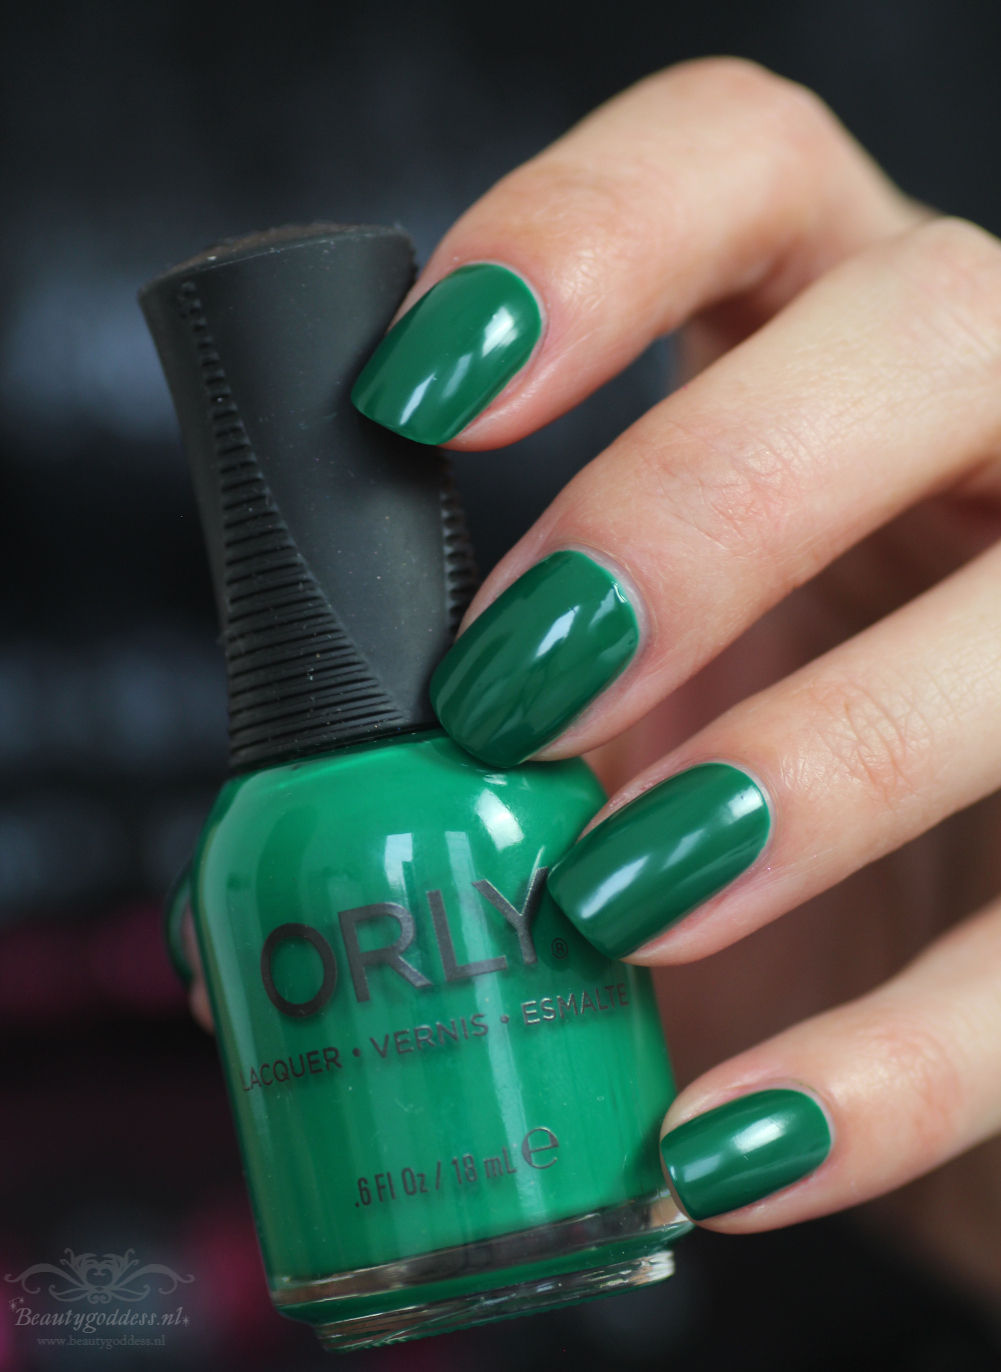 orly-sunset-invite-only-1